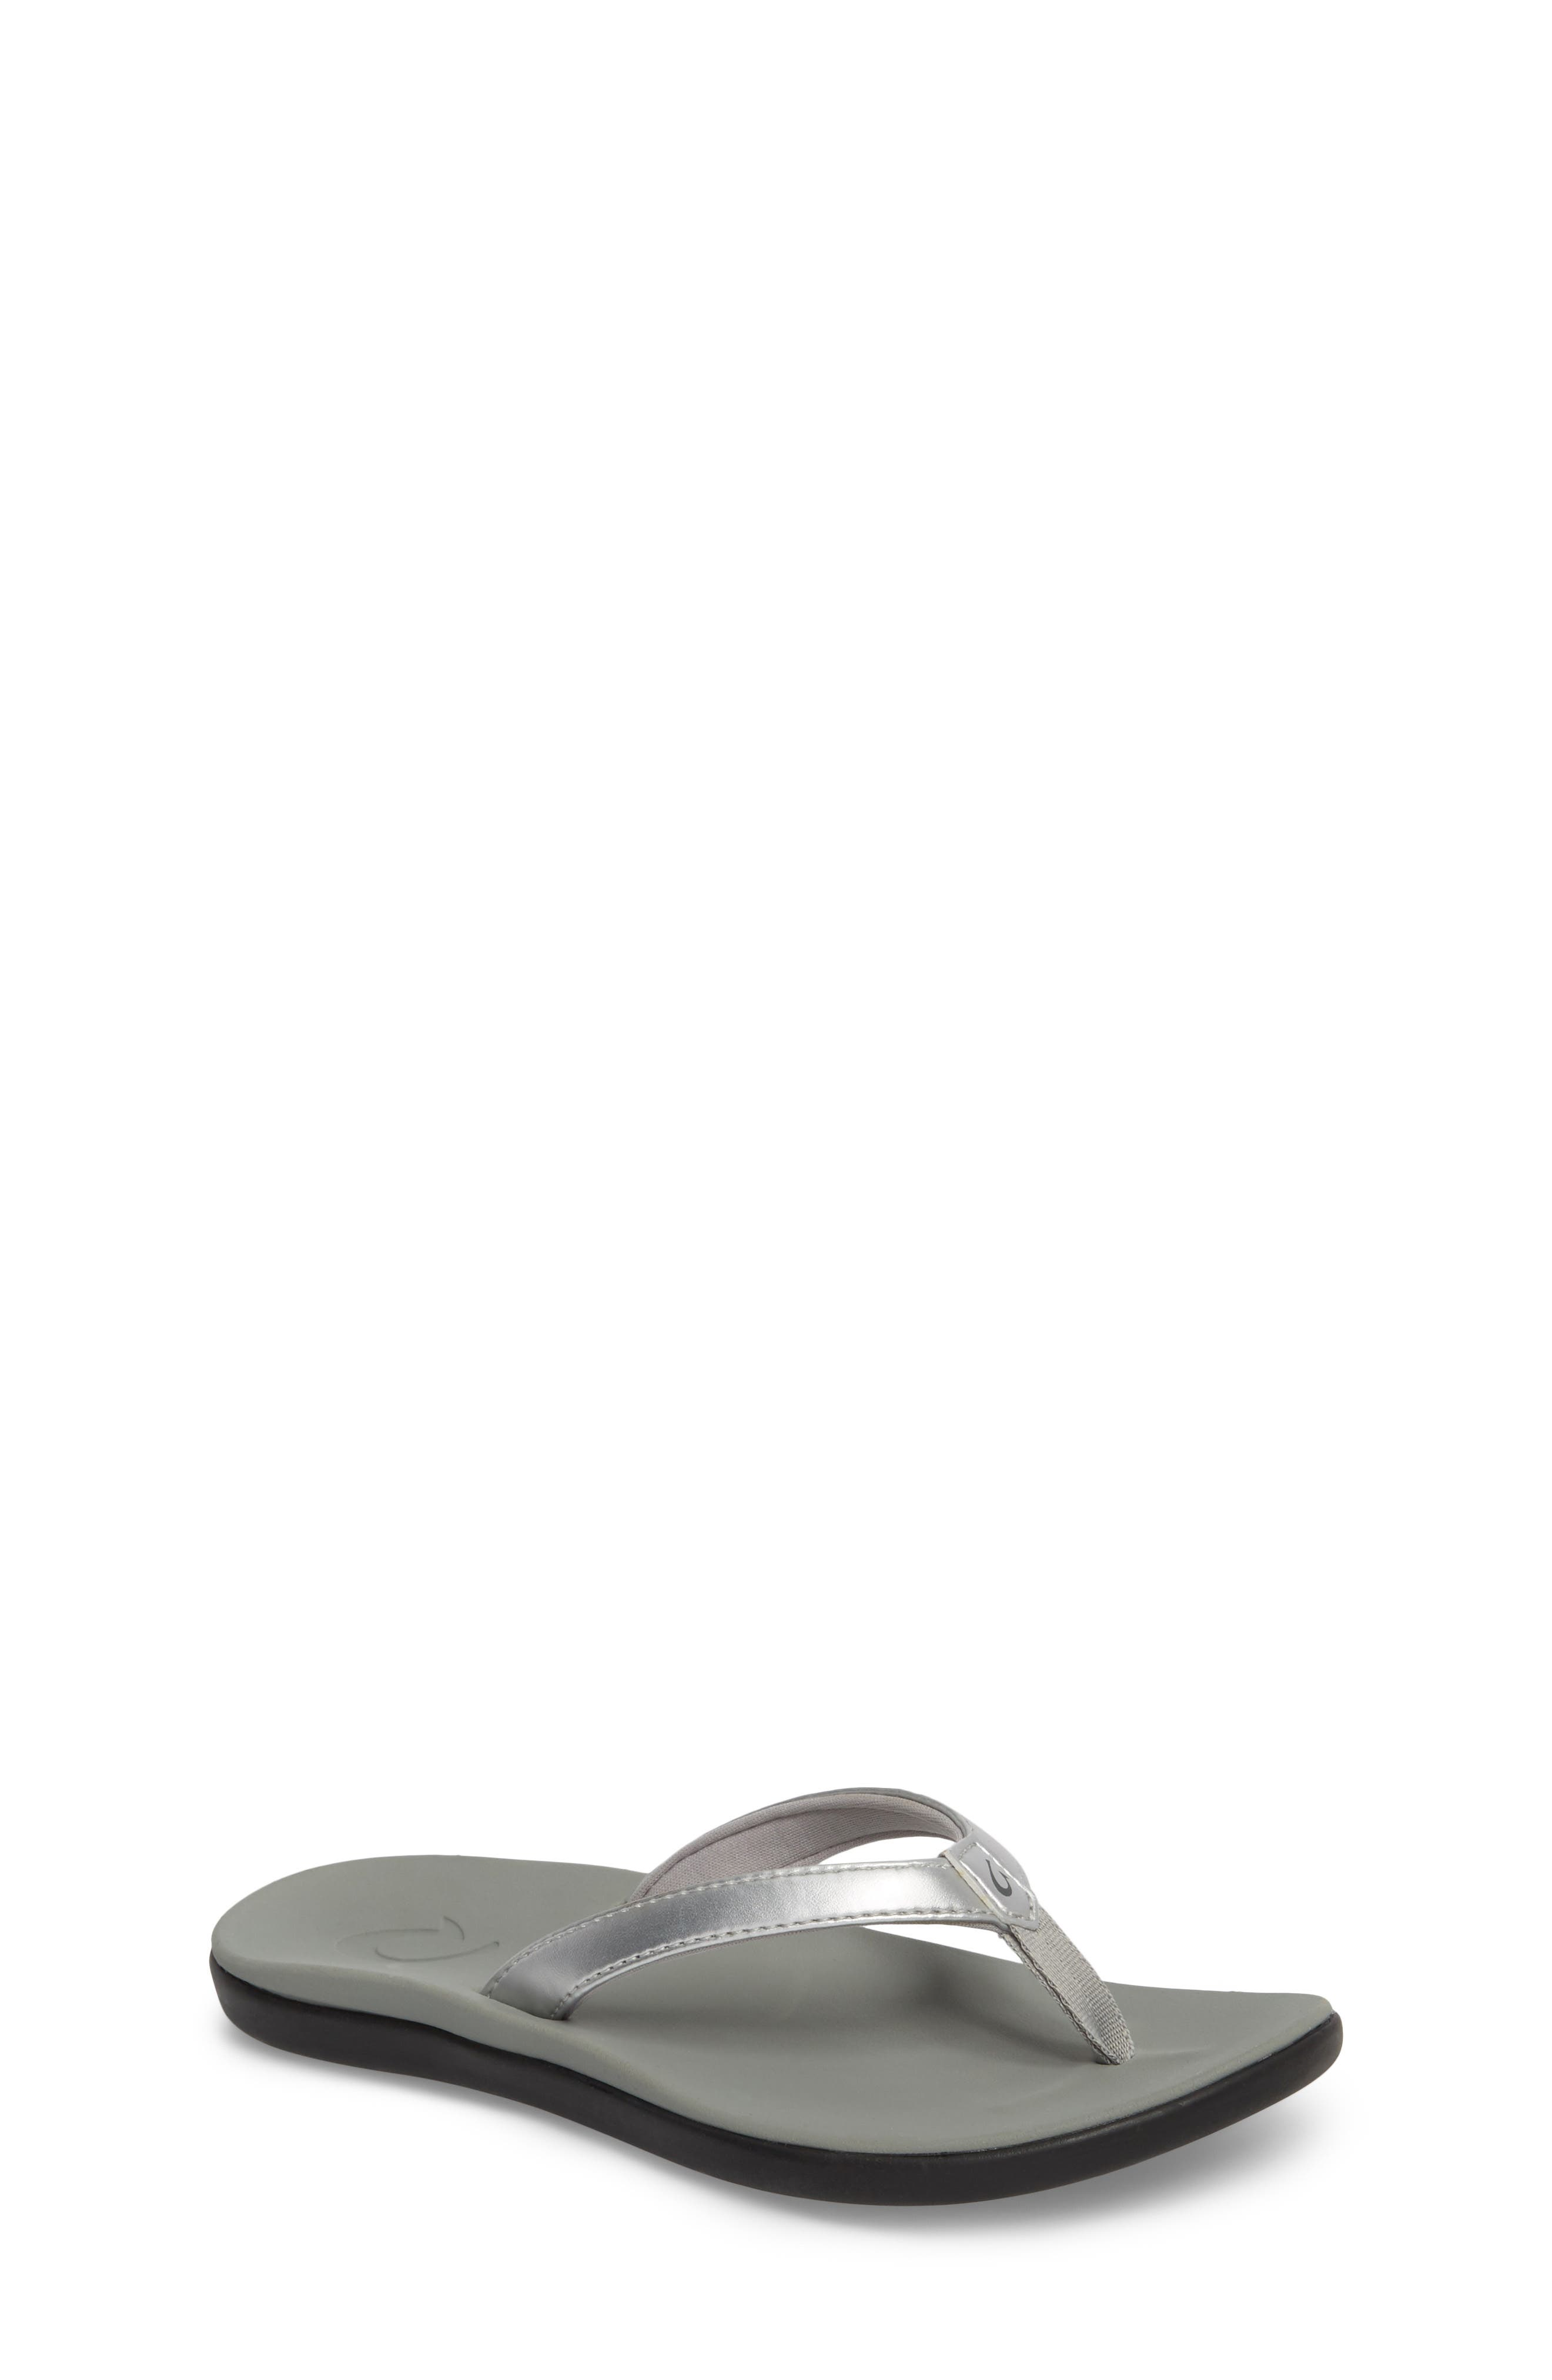 Ho'opio Flip Flop,                             Main thumbnail 1, color,                             SILVER STAR/ PALE GREY